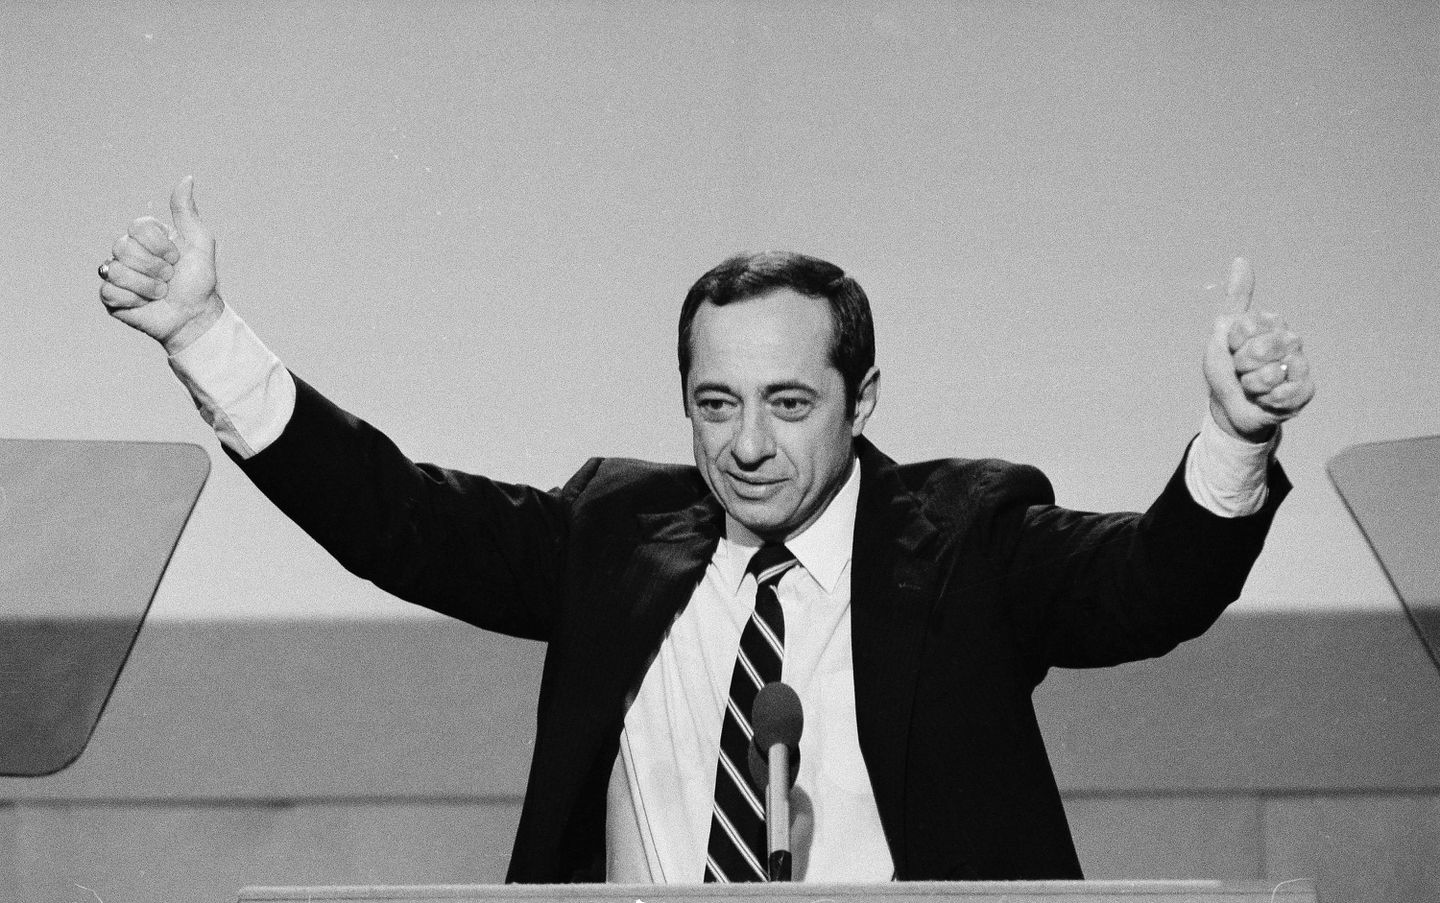 Mario Cuomo was the dream presidential candidate for many Democrats in 1988 and 1992.